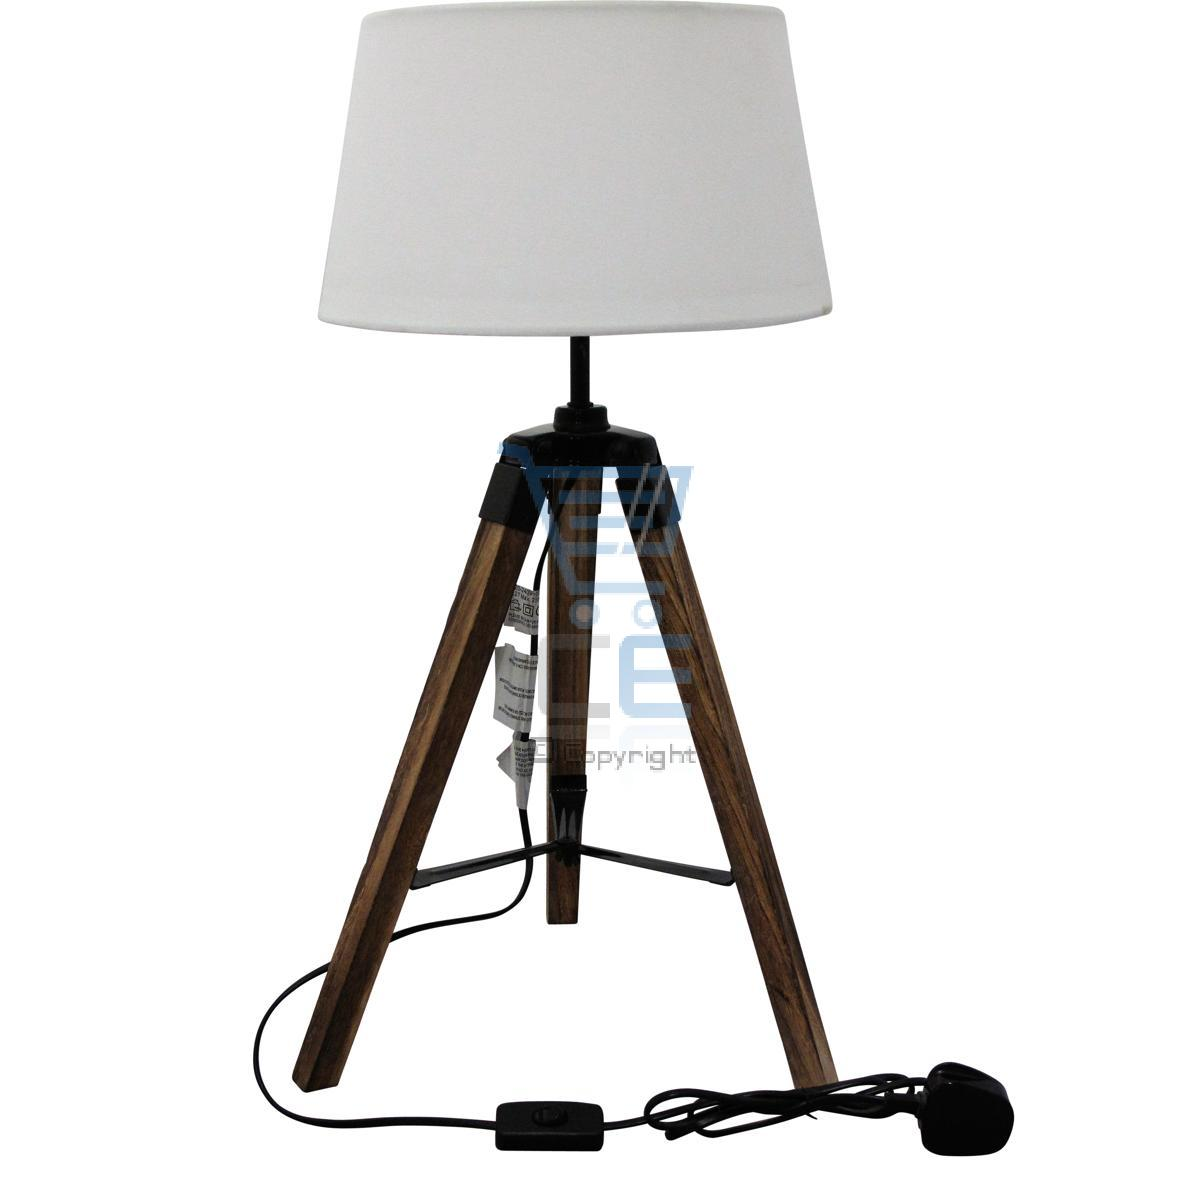 sil wooden home decorative tripod floor table lamp ebay. Black Bedroom Furniture Sets. Home Design Ideas